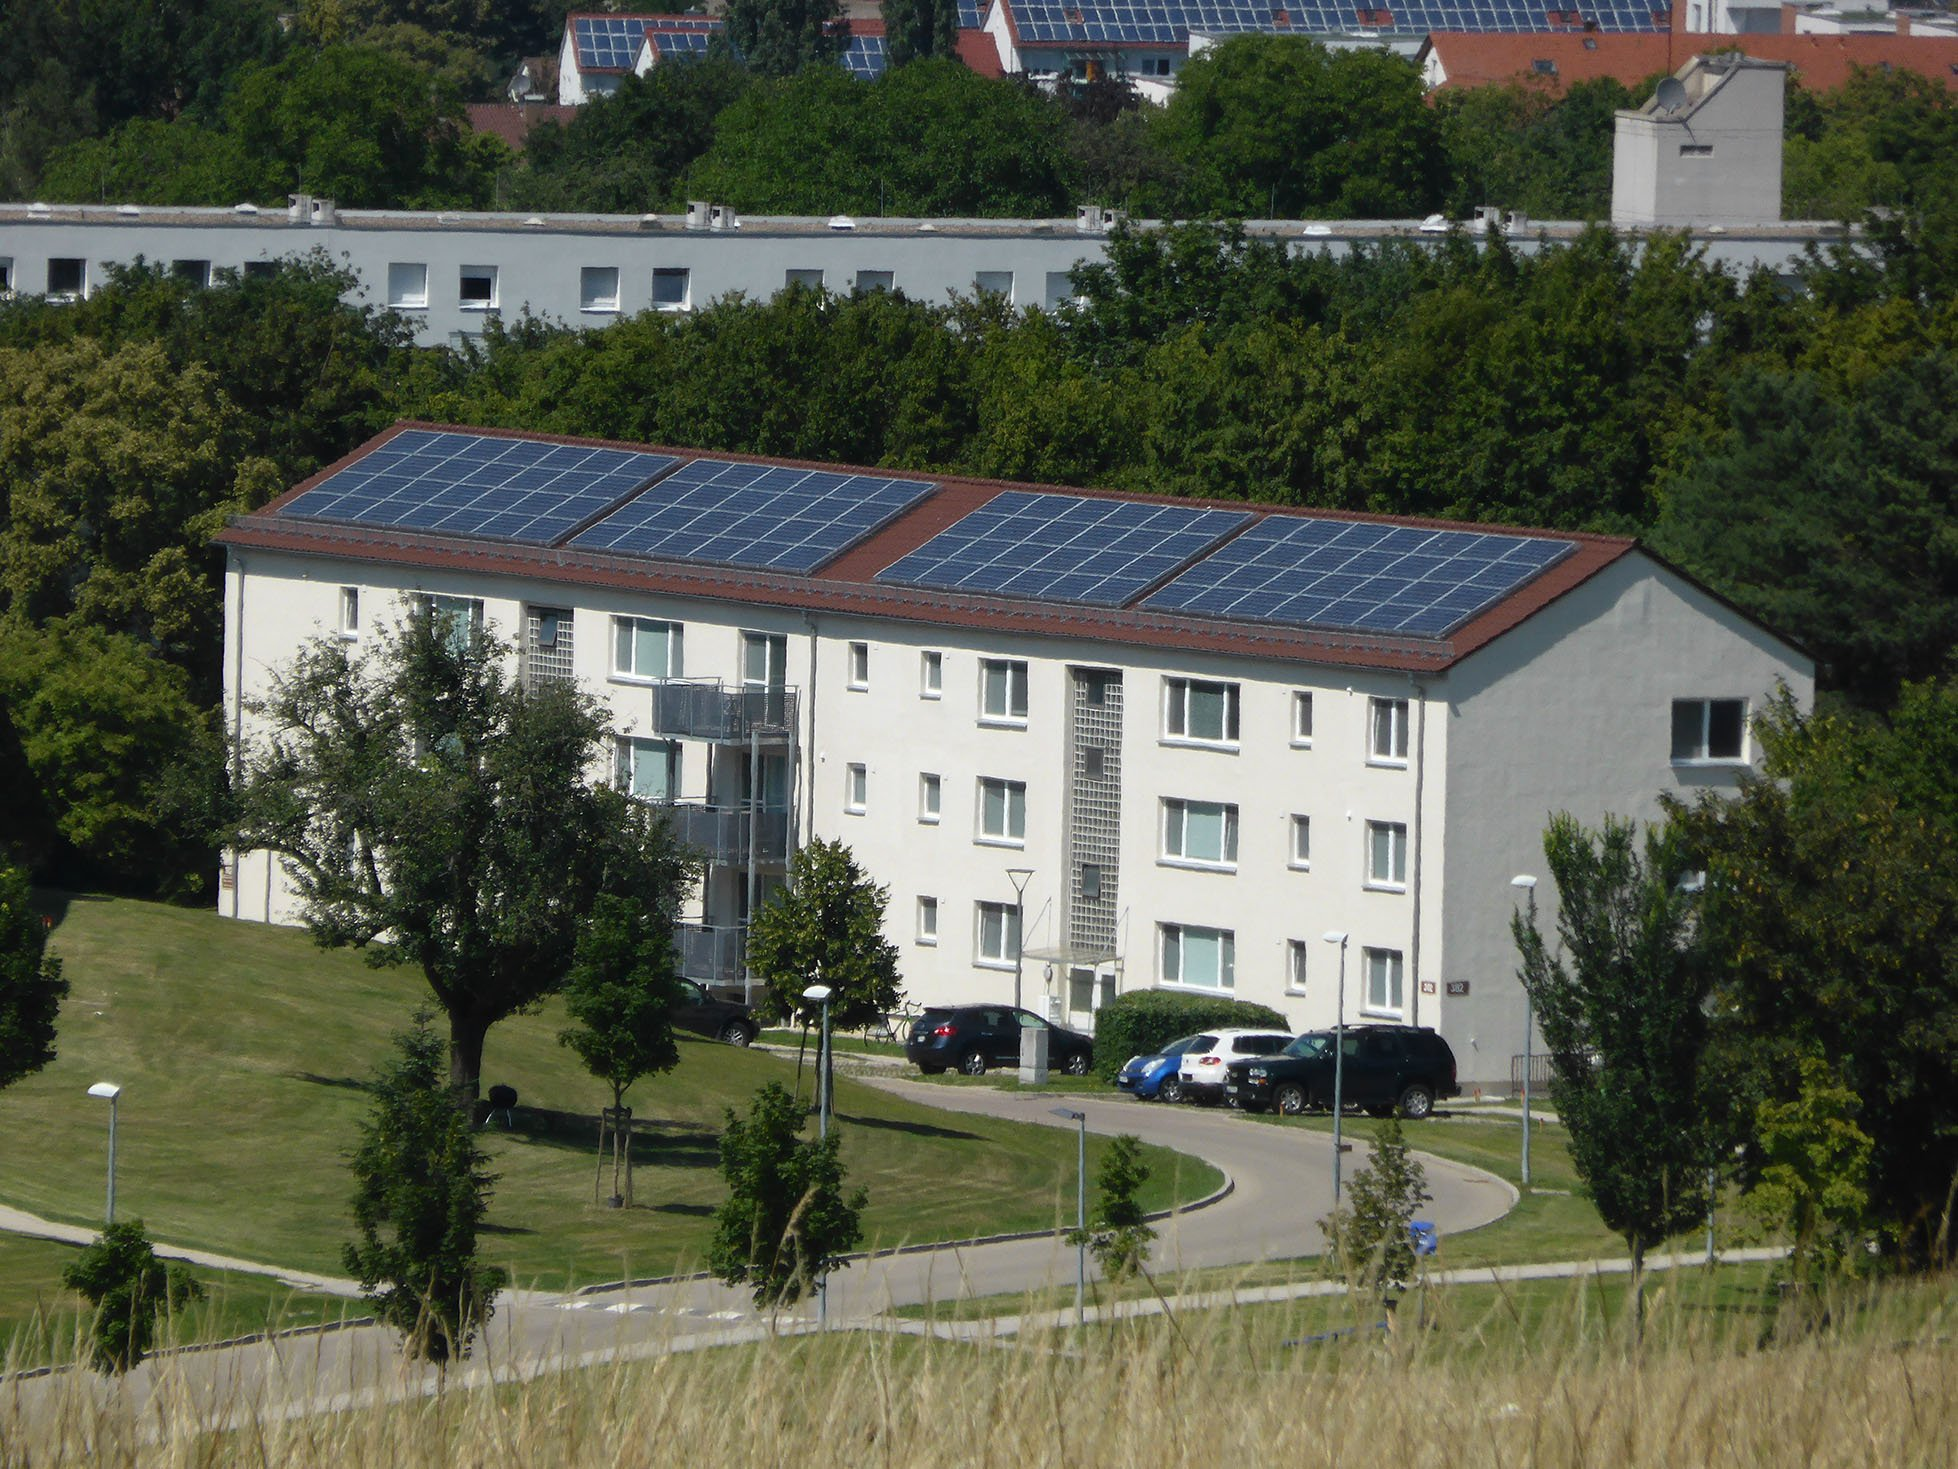 Construction Of Solar Panels For Electricity Generation Is